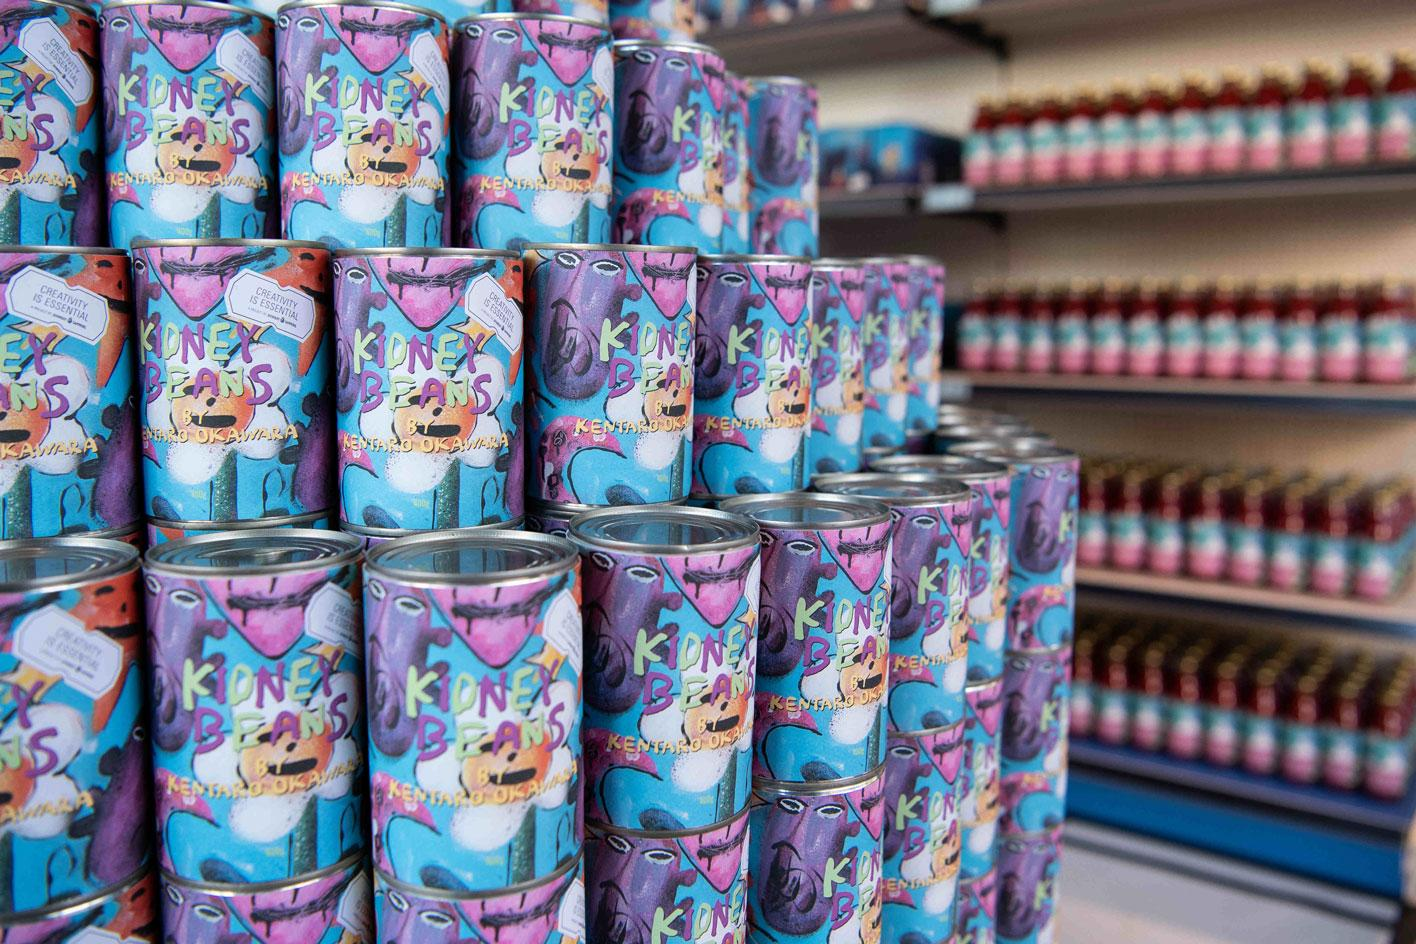 stacks of kidney beans tins designed by Kentaro Okawara for the Design Musuem's Supermarket